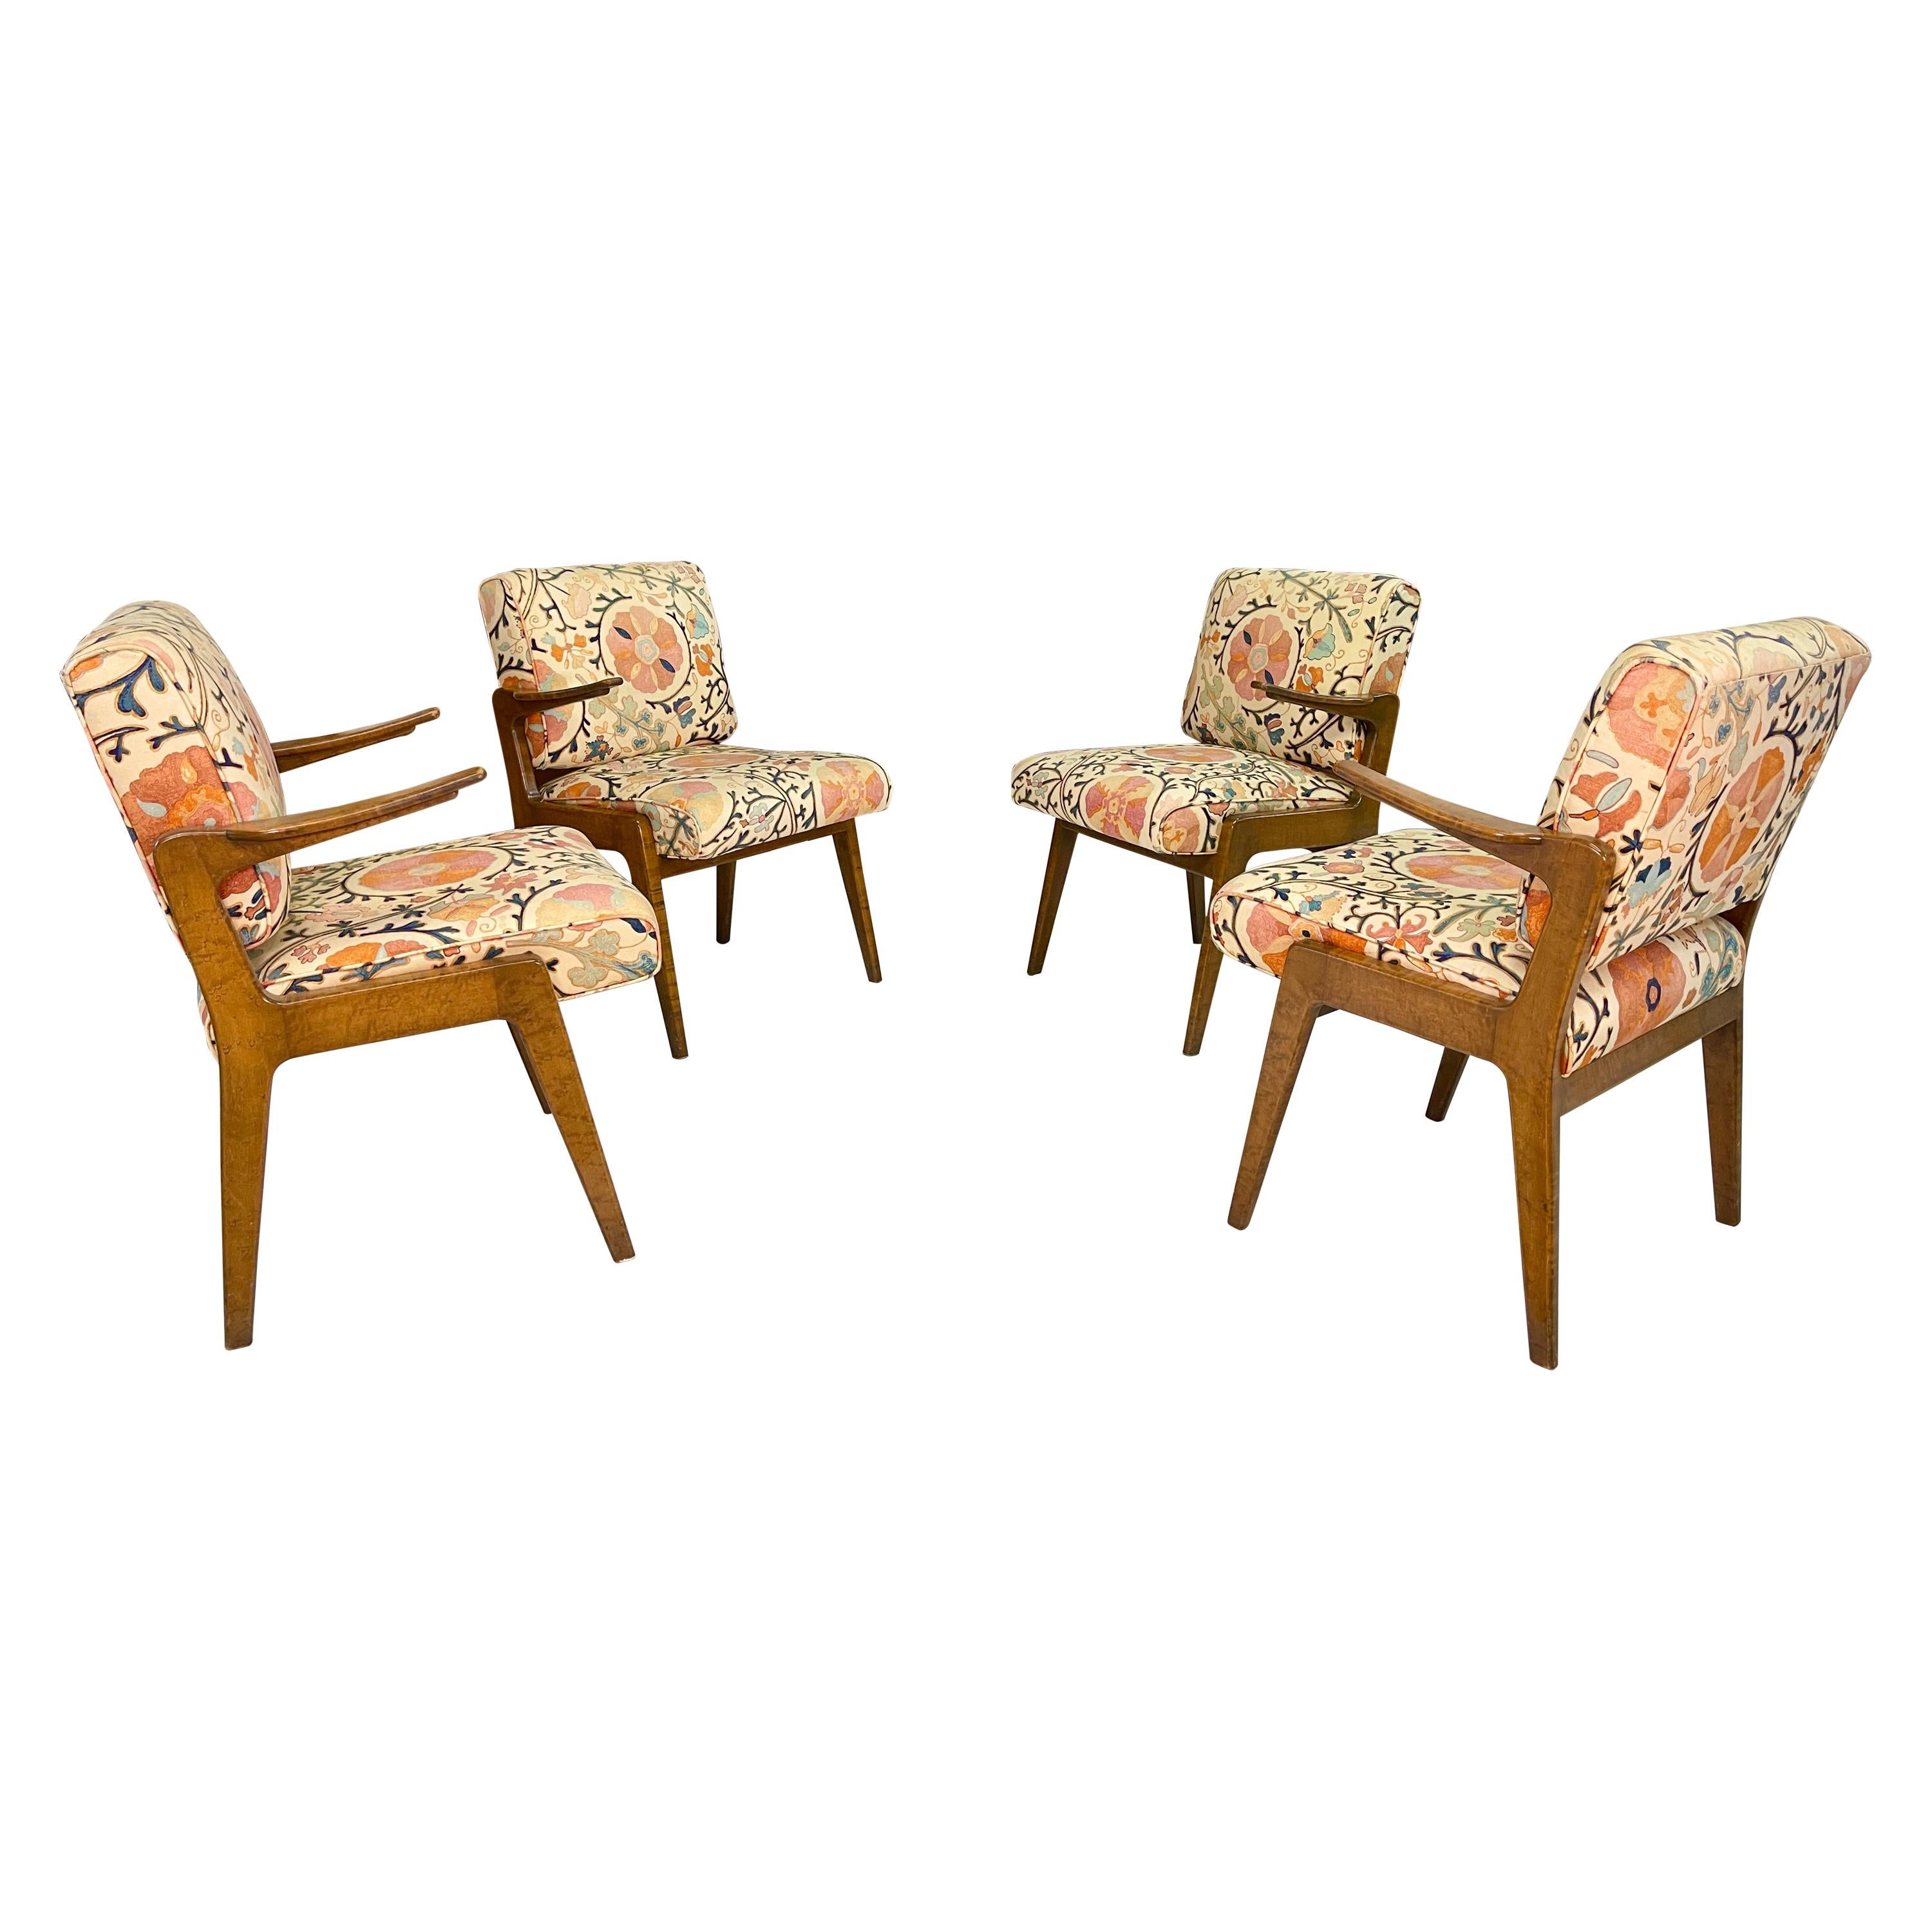 Set of Four Armchairs by Adolfo Genovese of F & G Handmade Furniture